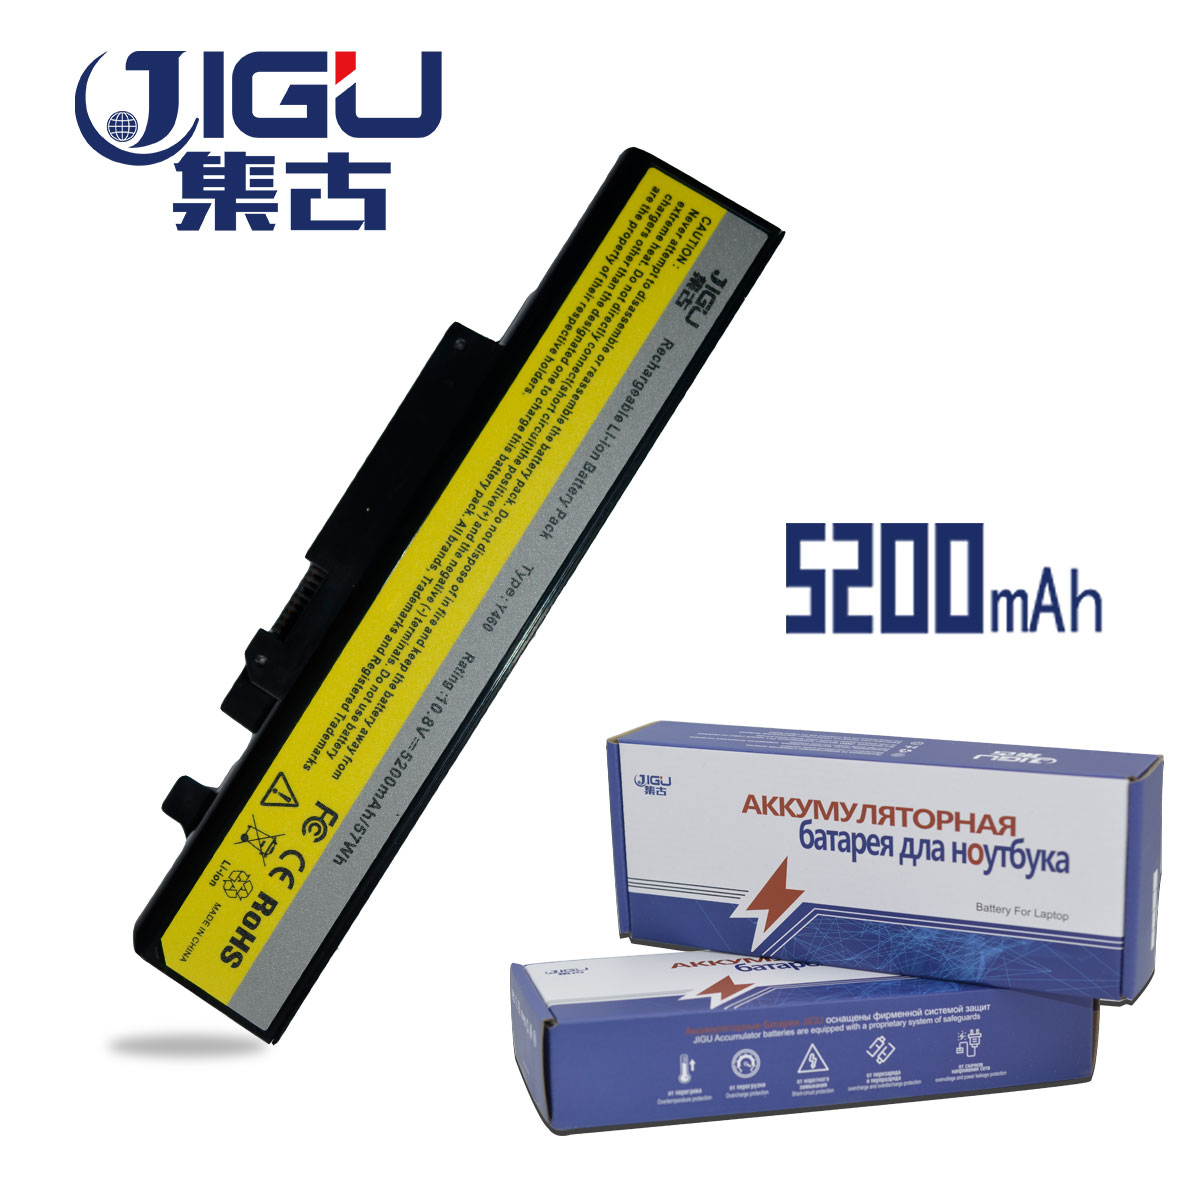 все цены на JIGU Battery For LENOVO IdeaPad B560 Y460 V560 Y560 Y460A Y460AT Y460C Y460N Y460P Y560 Y560A Y560P 57Y6440 L10S6Y01